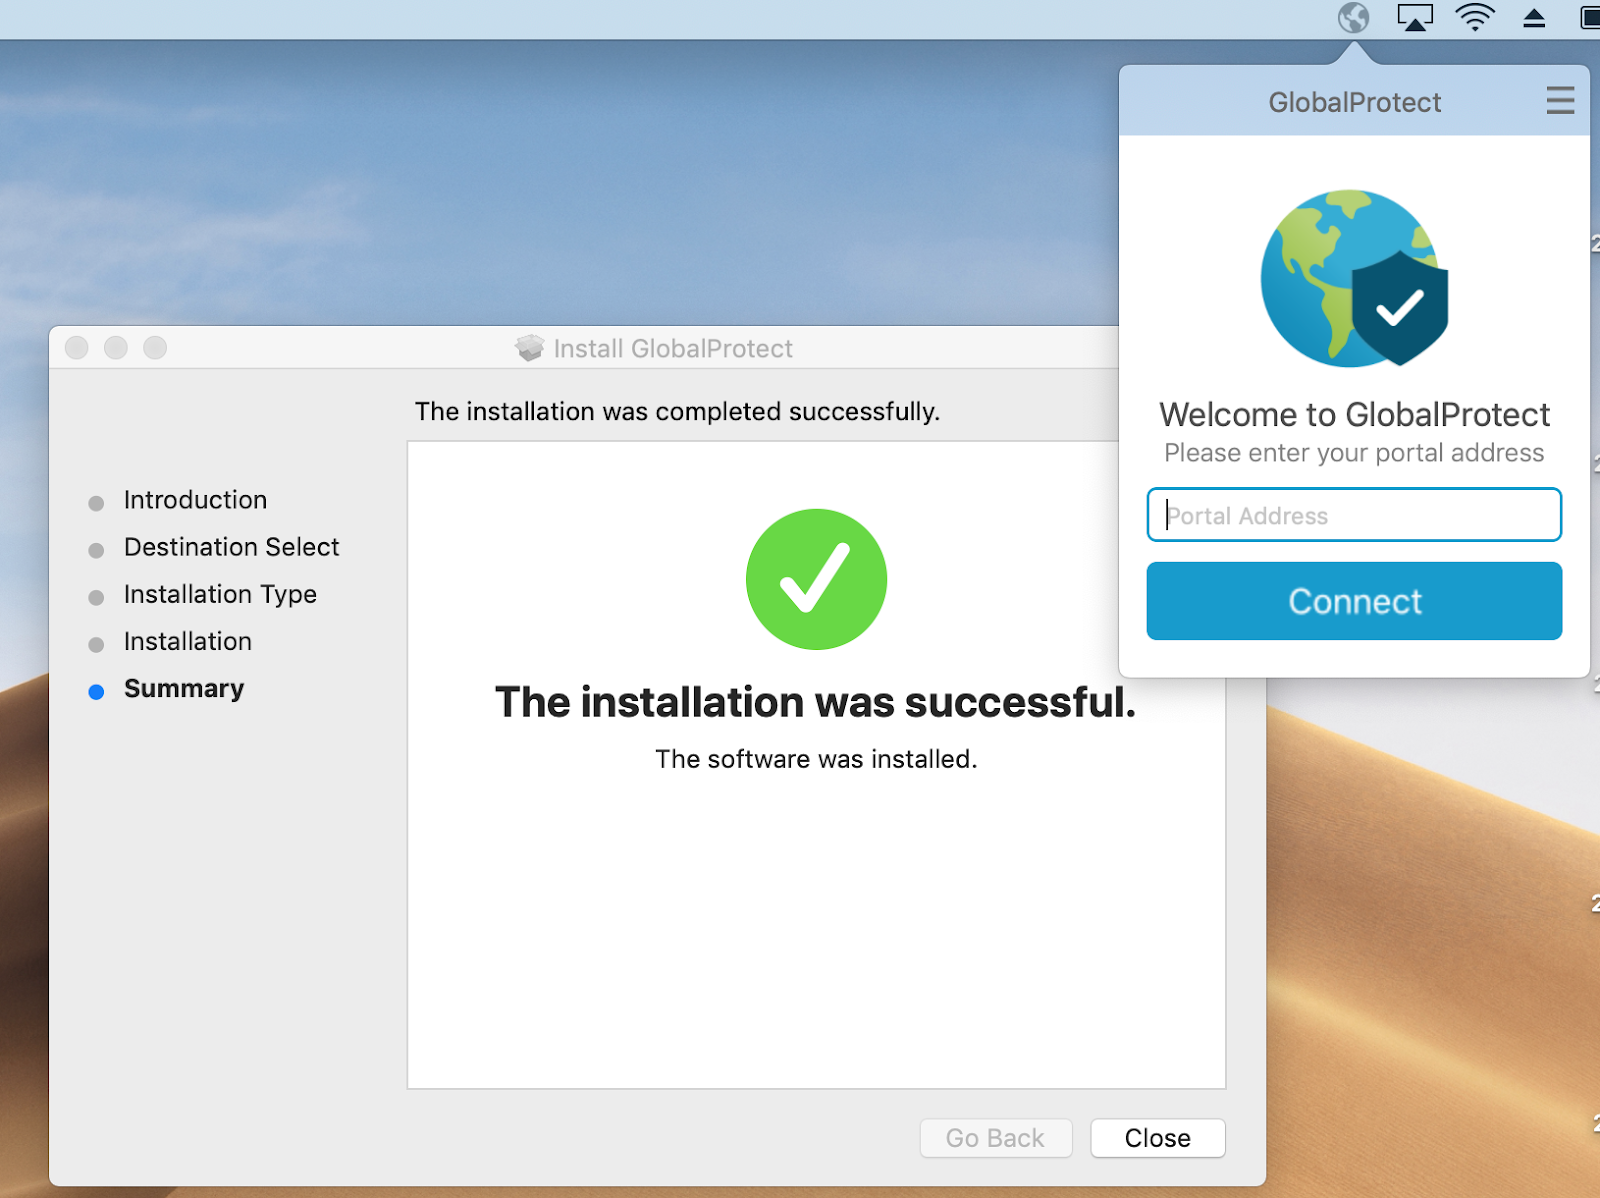 Installation Success confirmation window and close button.